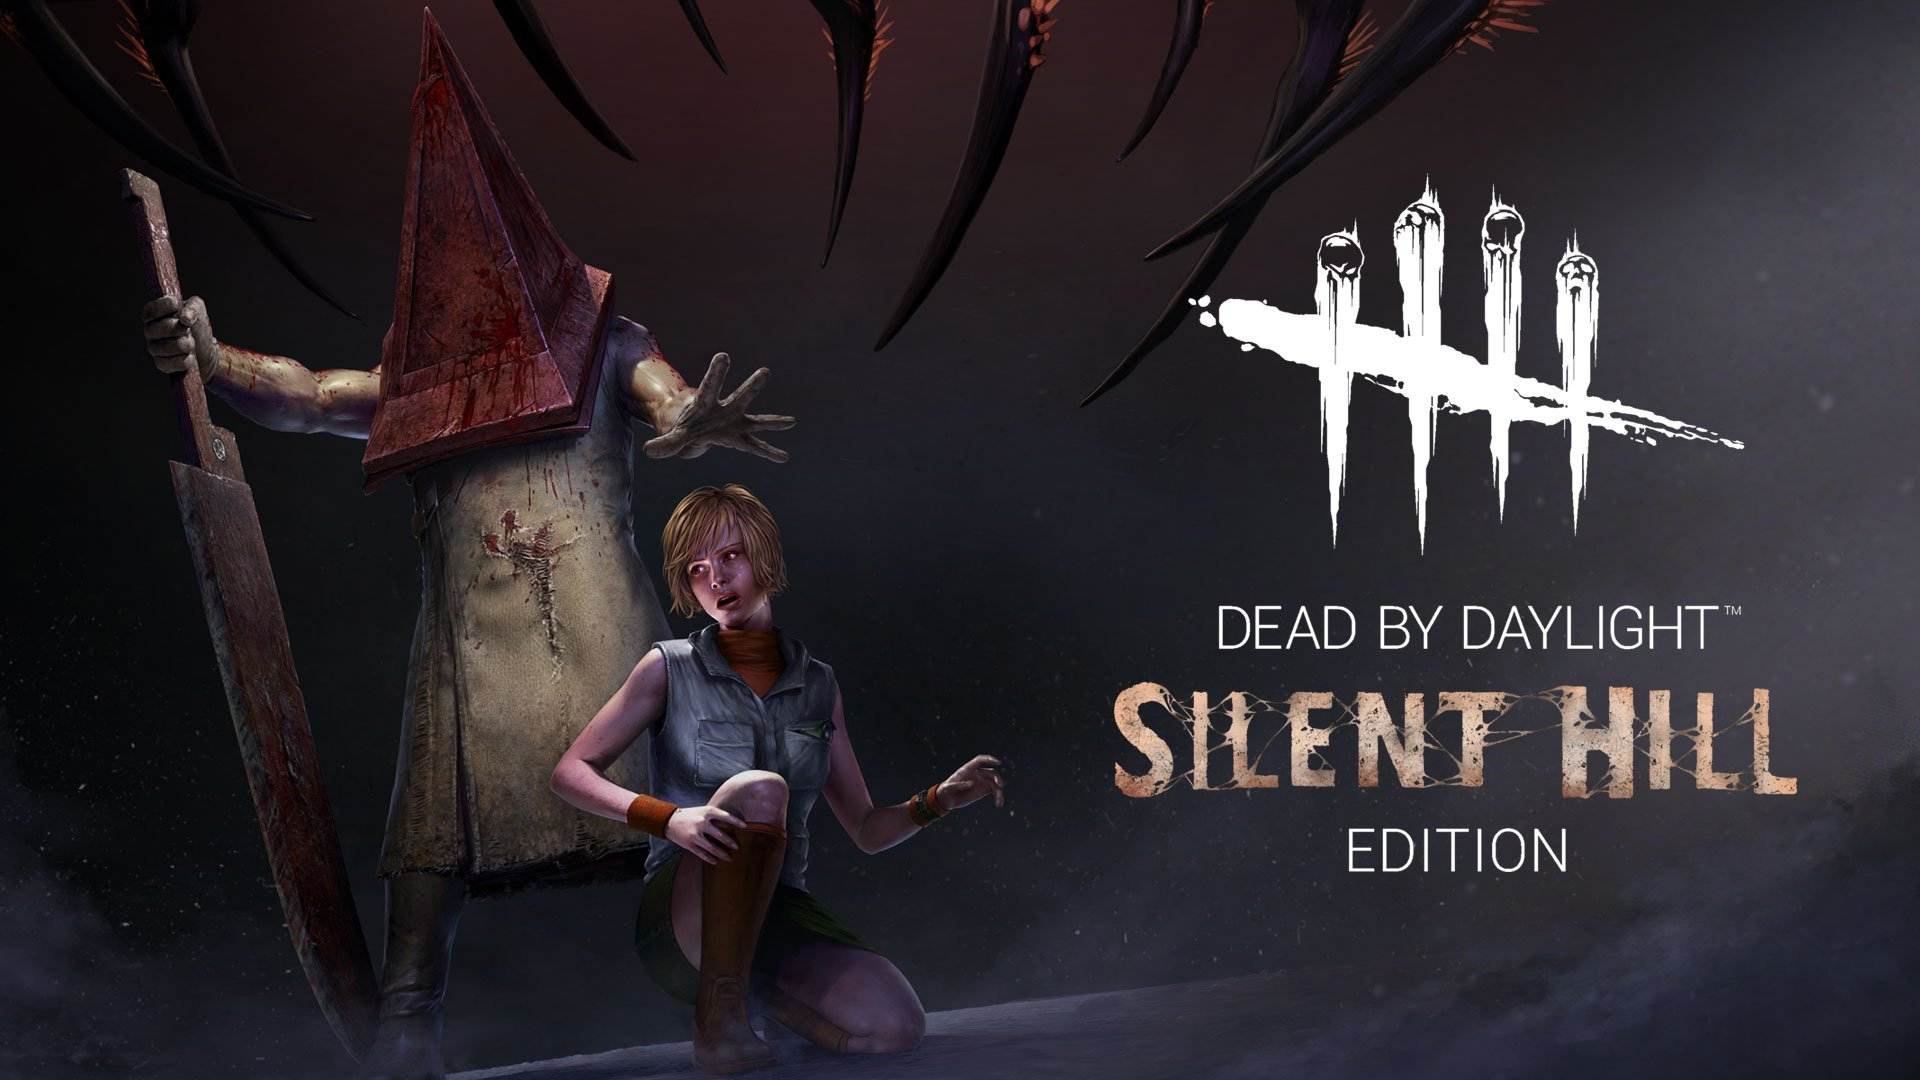 Dead by Daylight Silent Hill Edition SPECIAL SOUNDTRACK